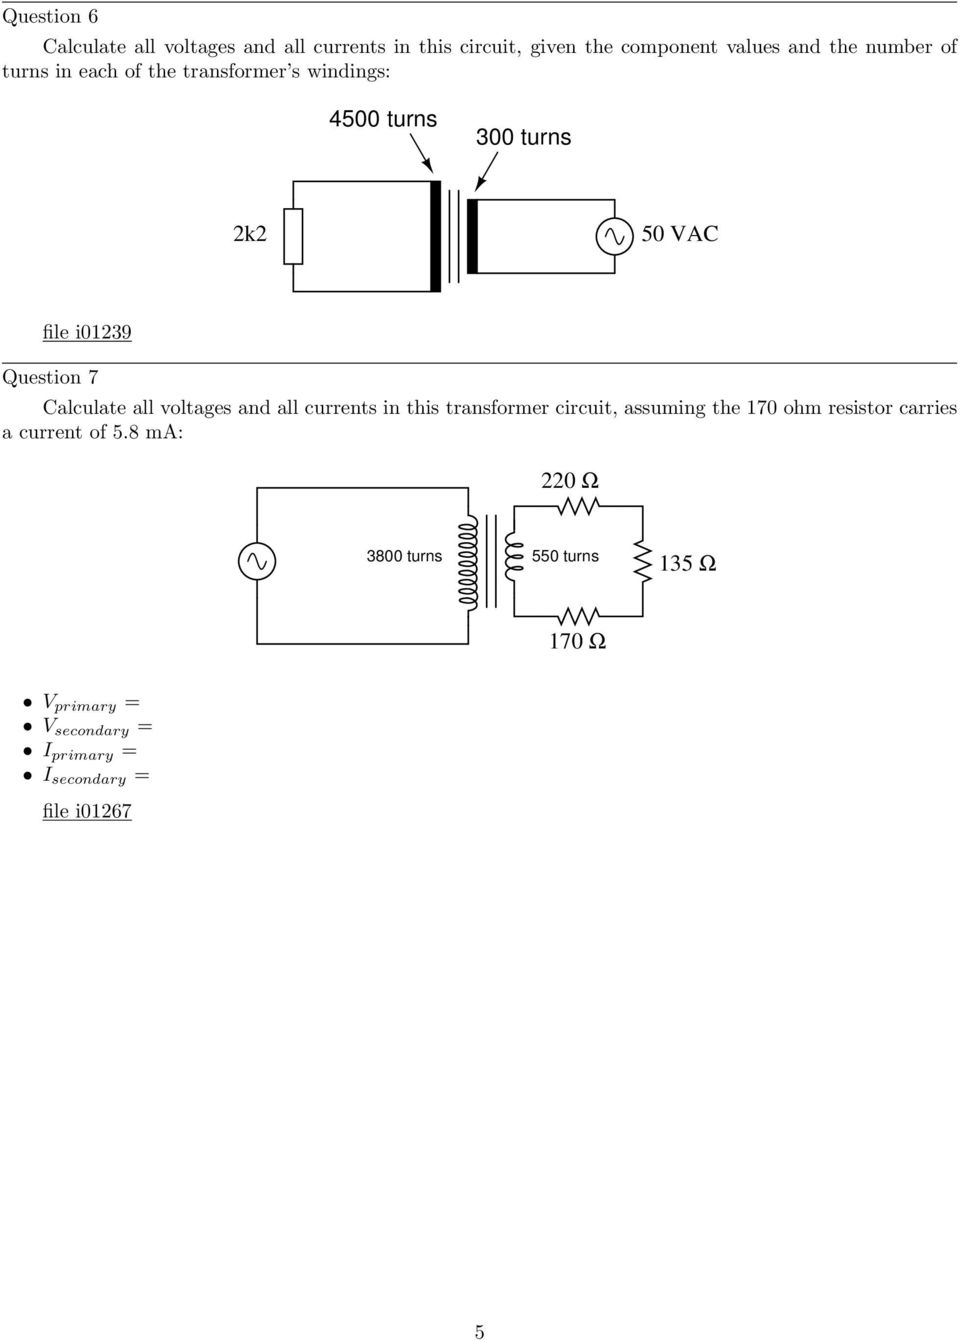 Calculate all voltages and all currents in this transformer circuit, assuming the 170 ohm resistor carries a